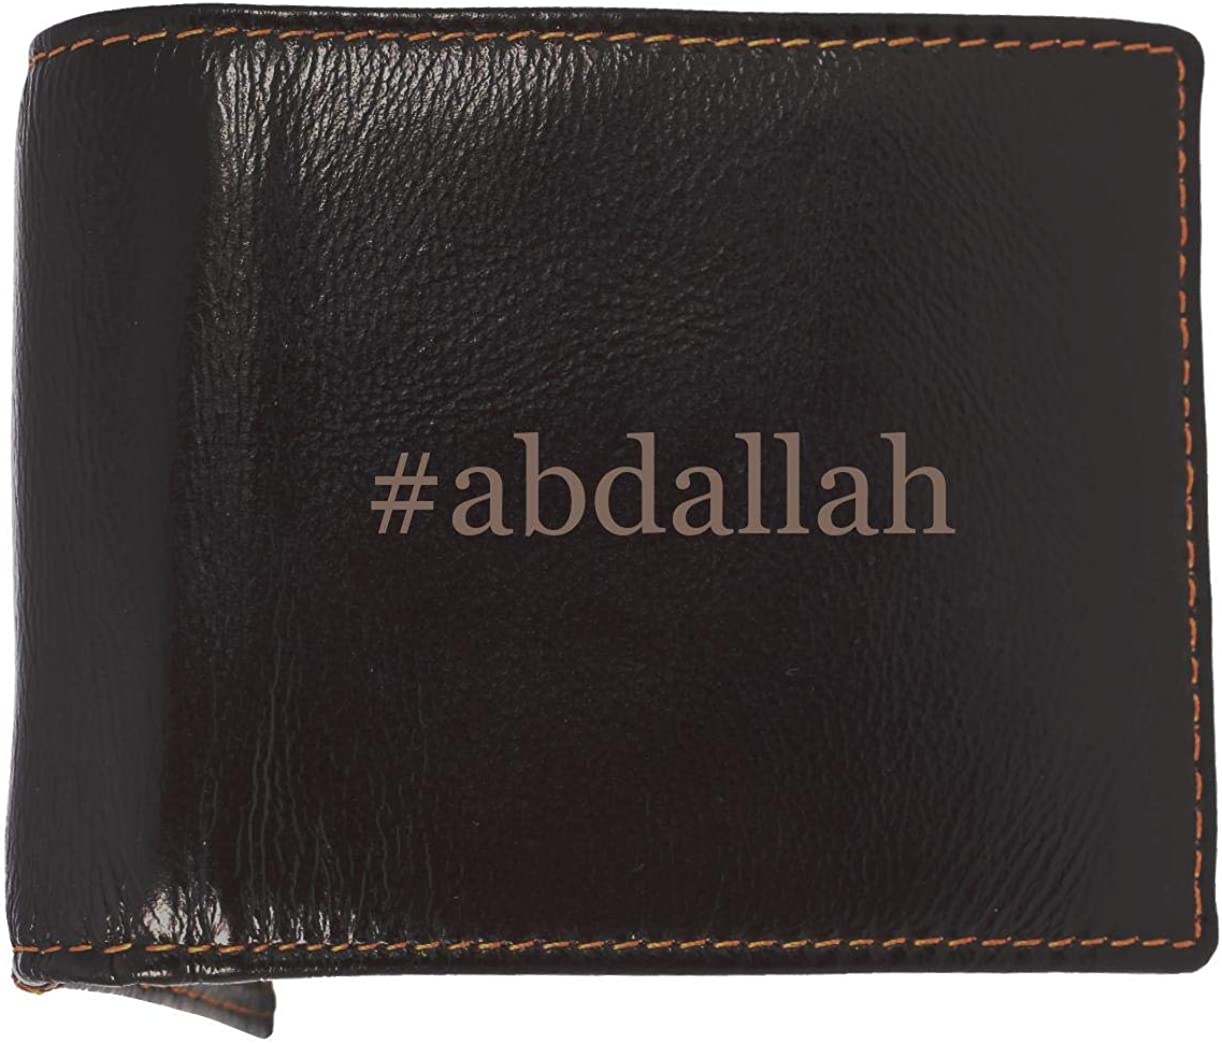 #abdallah - Soft Hashtag Cowhide Genuine Engraved Bifold Leather Wallet 61102BTbET0L